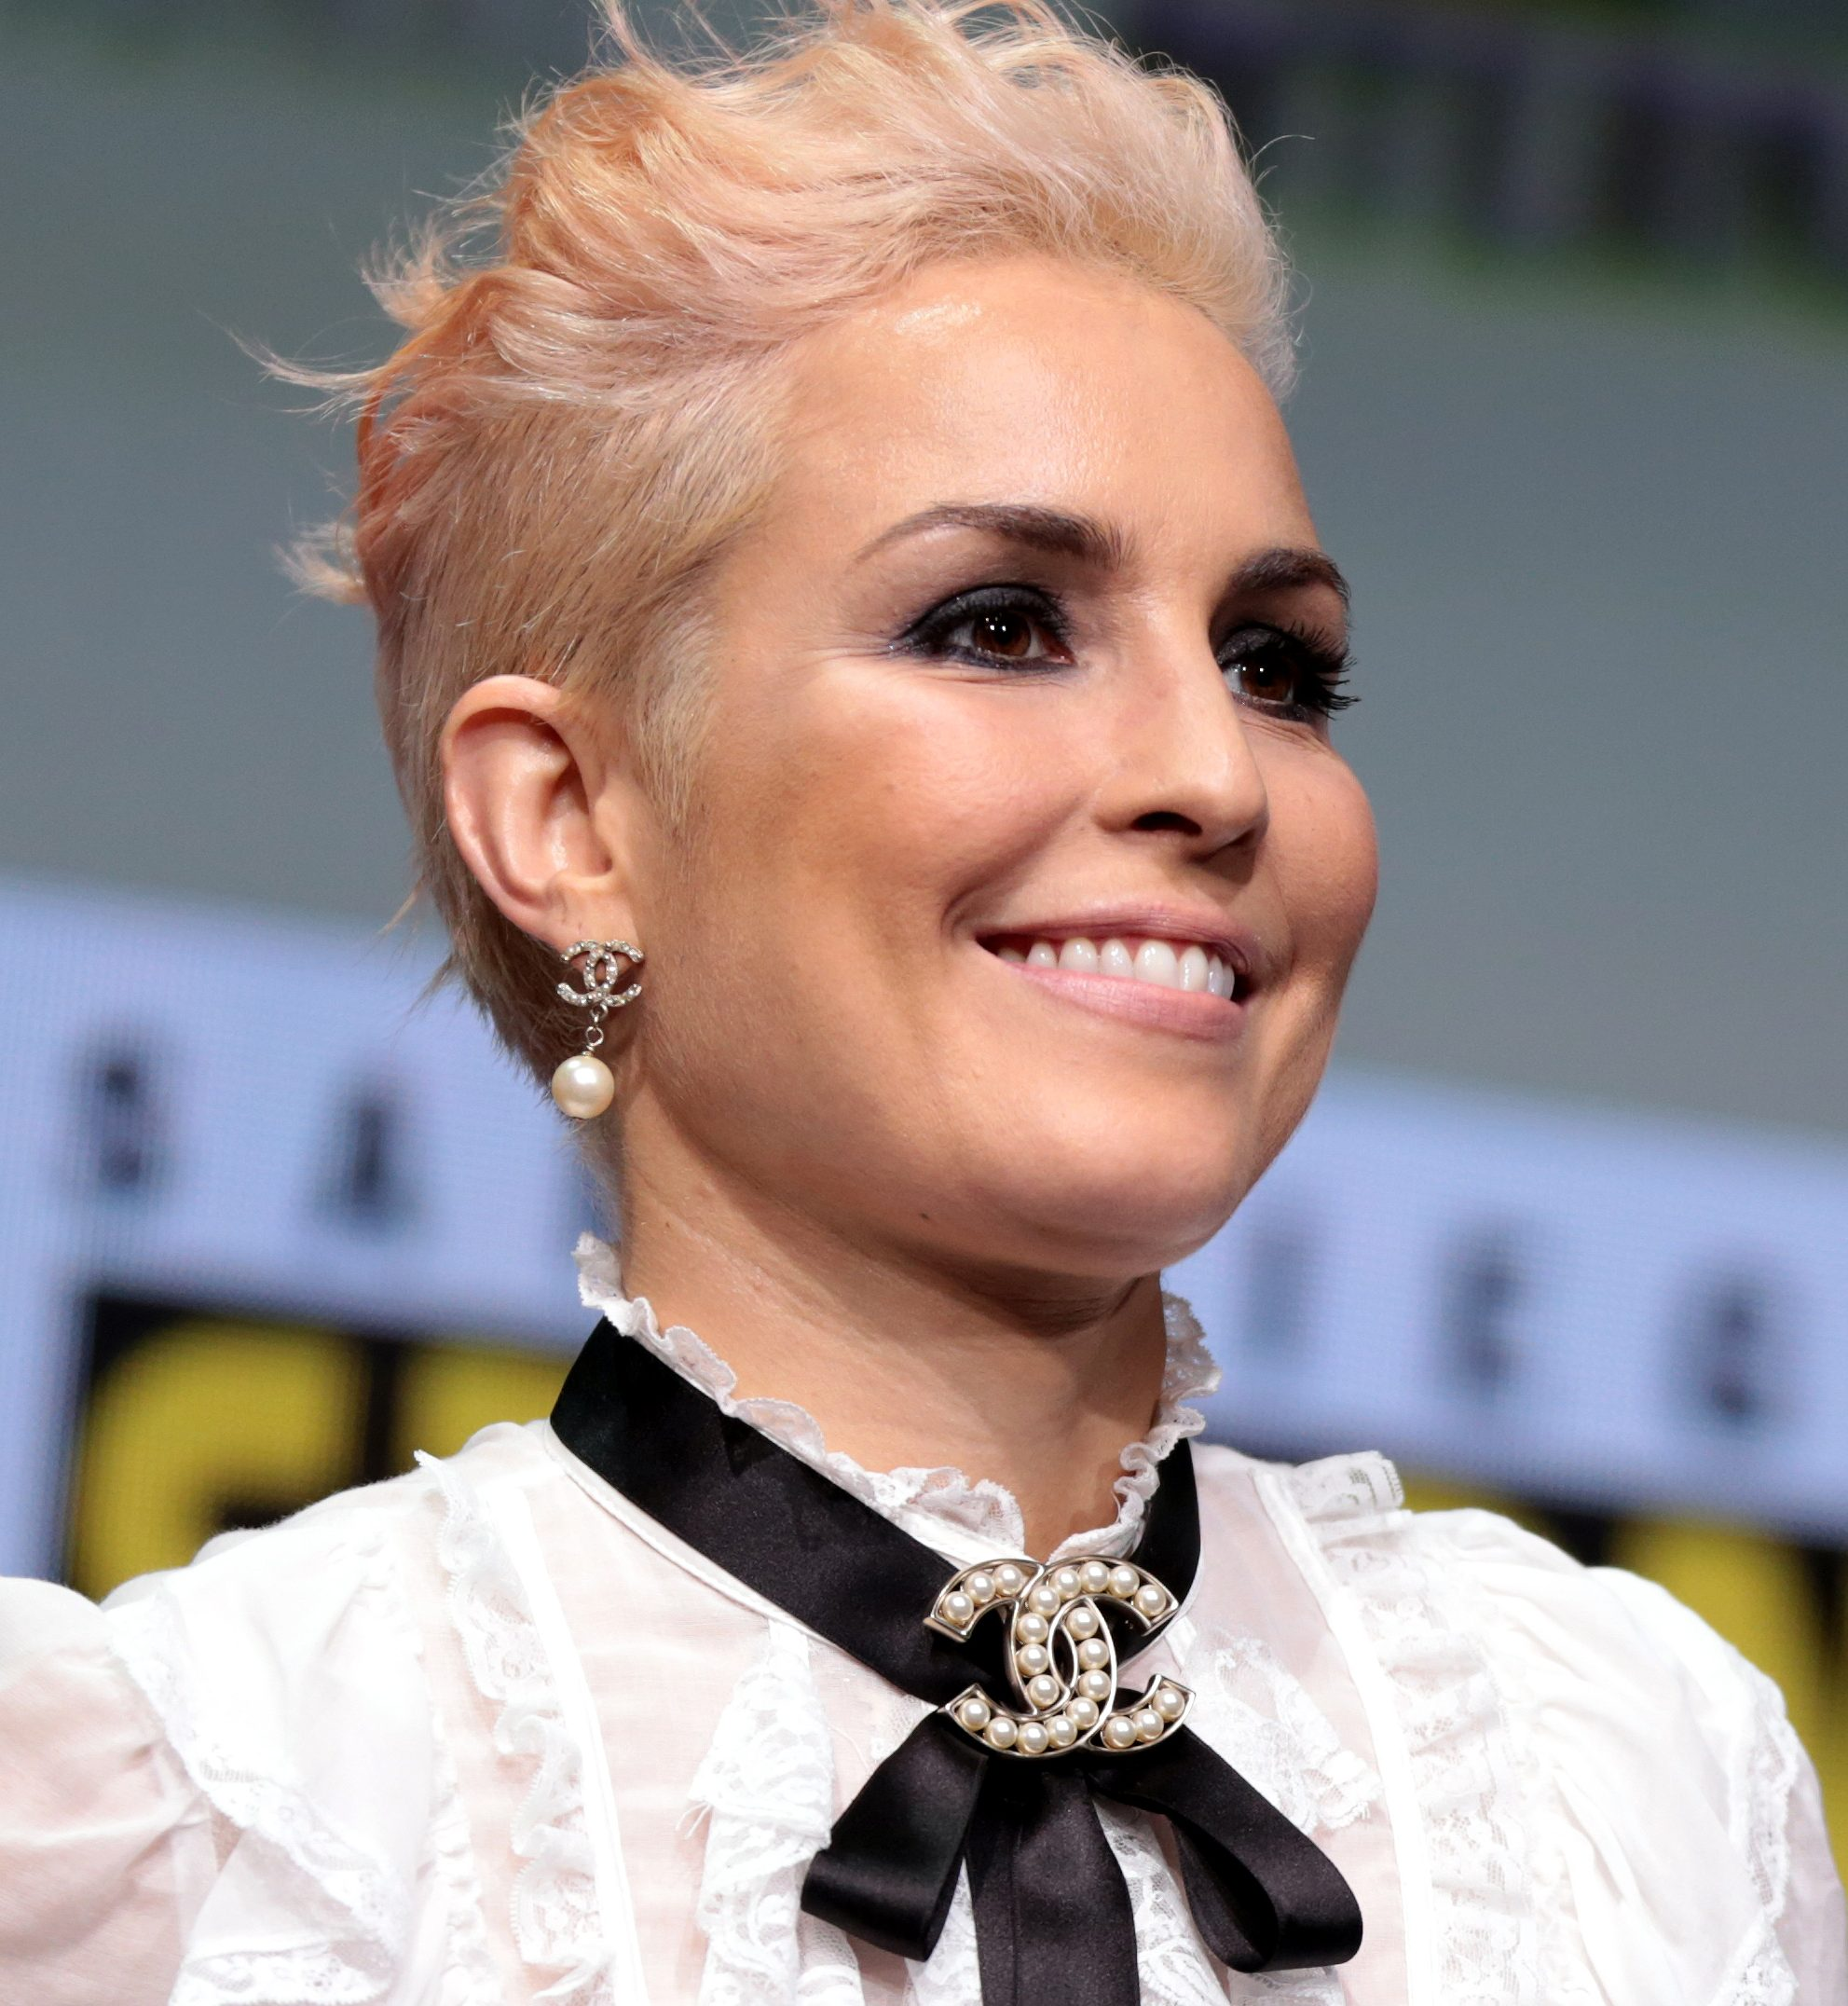 Noomi Rapace by Gage Skidmore e1580128191794 20 Actors Who Would Kill It As The Next James Bond